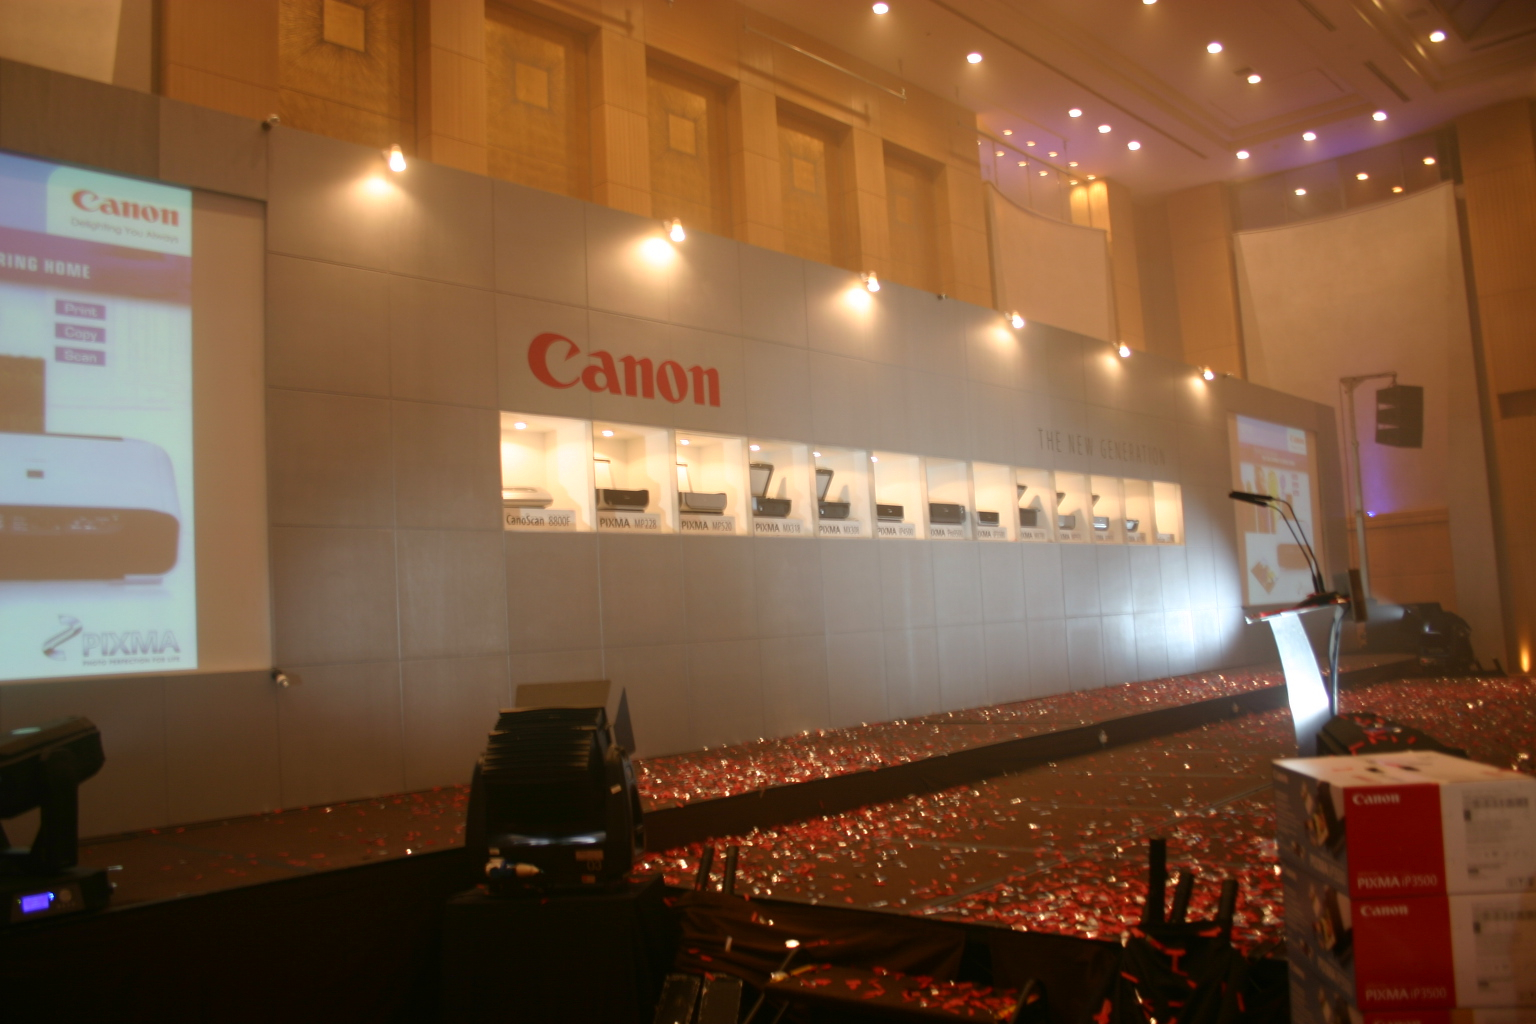 Canon printers launch